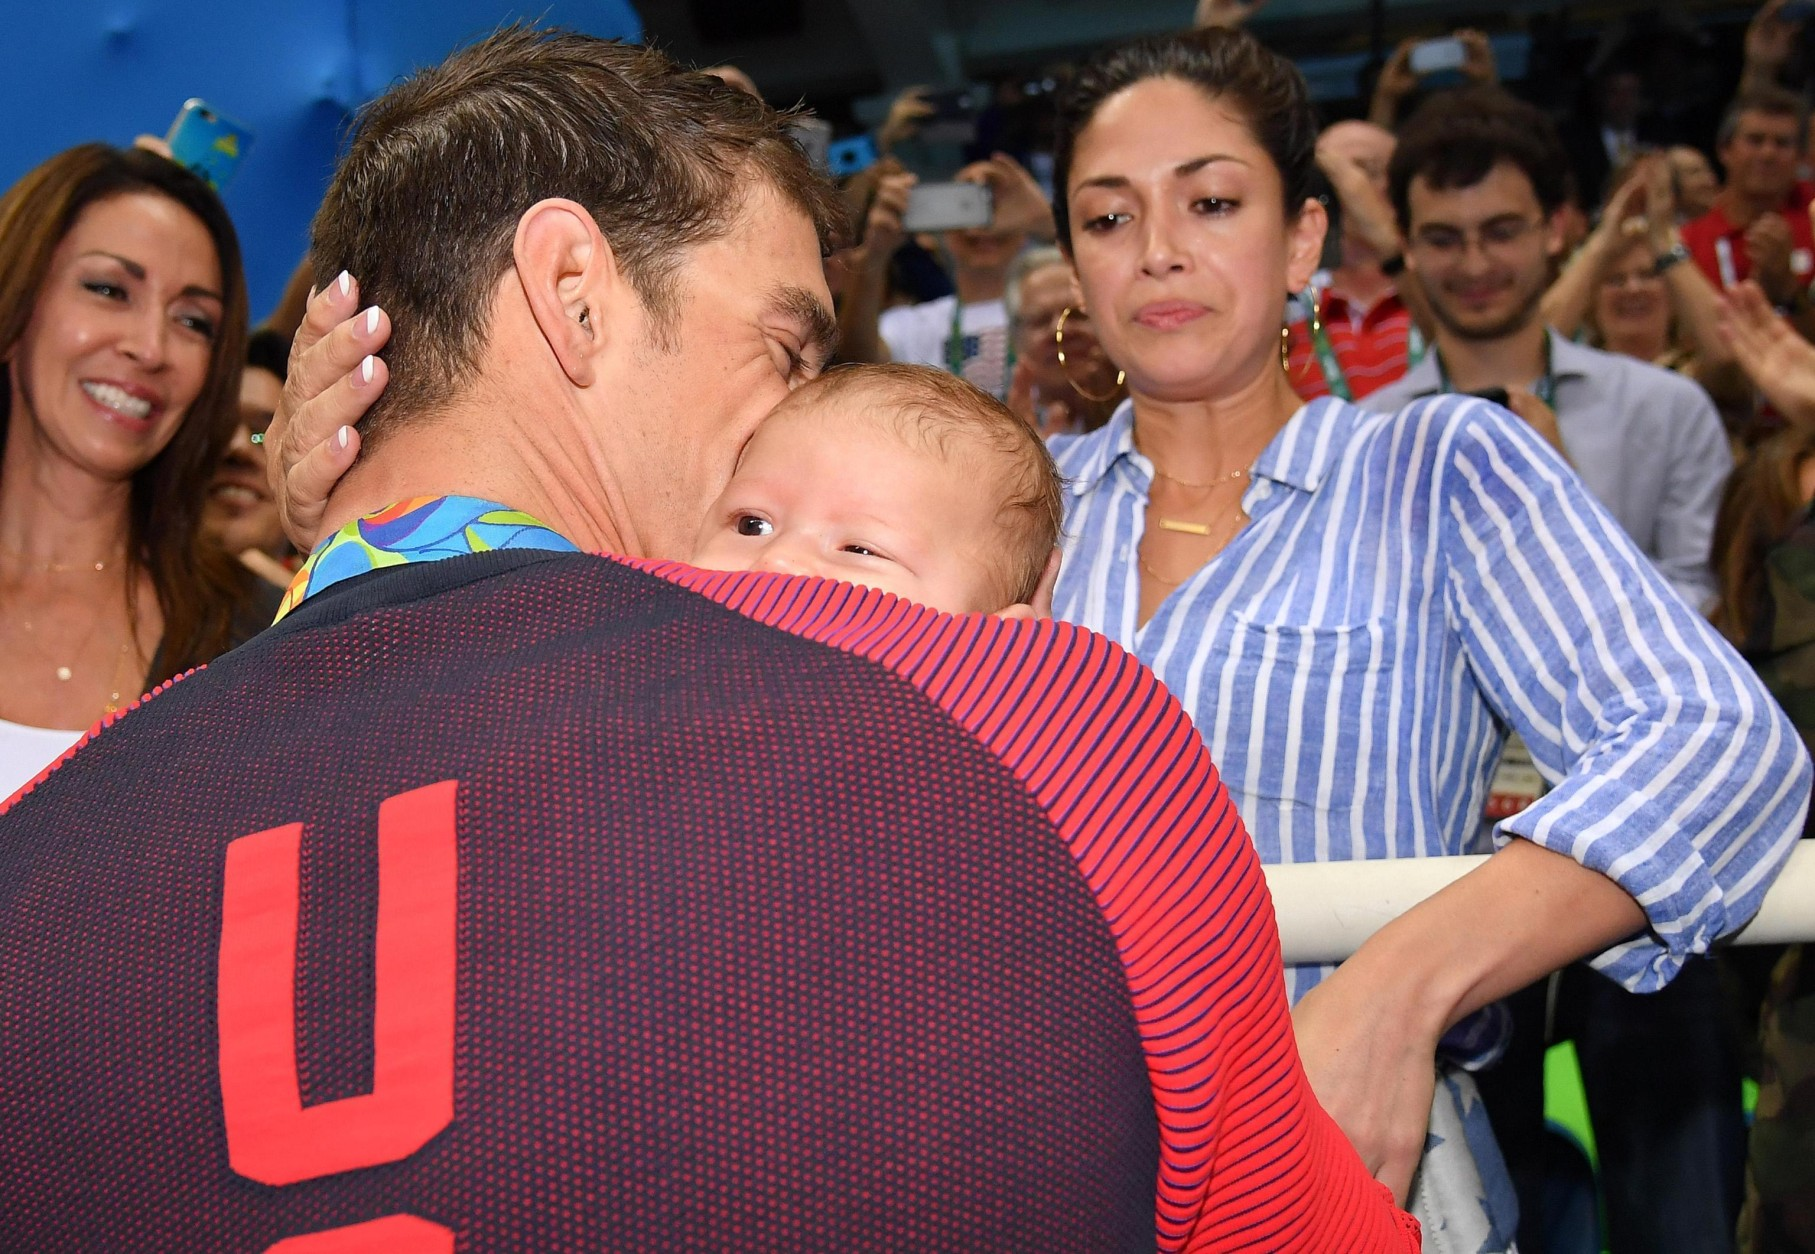 United States' Michael Phelps celebrates winning his gold medal in the men's 200-meter butterfly with his fiancee Nicole Johnson and baby Boomer during the swimming competitions at the 2016 Summer Olympics, Tuesday, Aug. 9, 2016, in Rio de Janeiro, Brazil. (Ettore Ferrari/ANSA via AP)